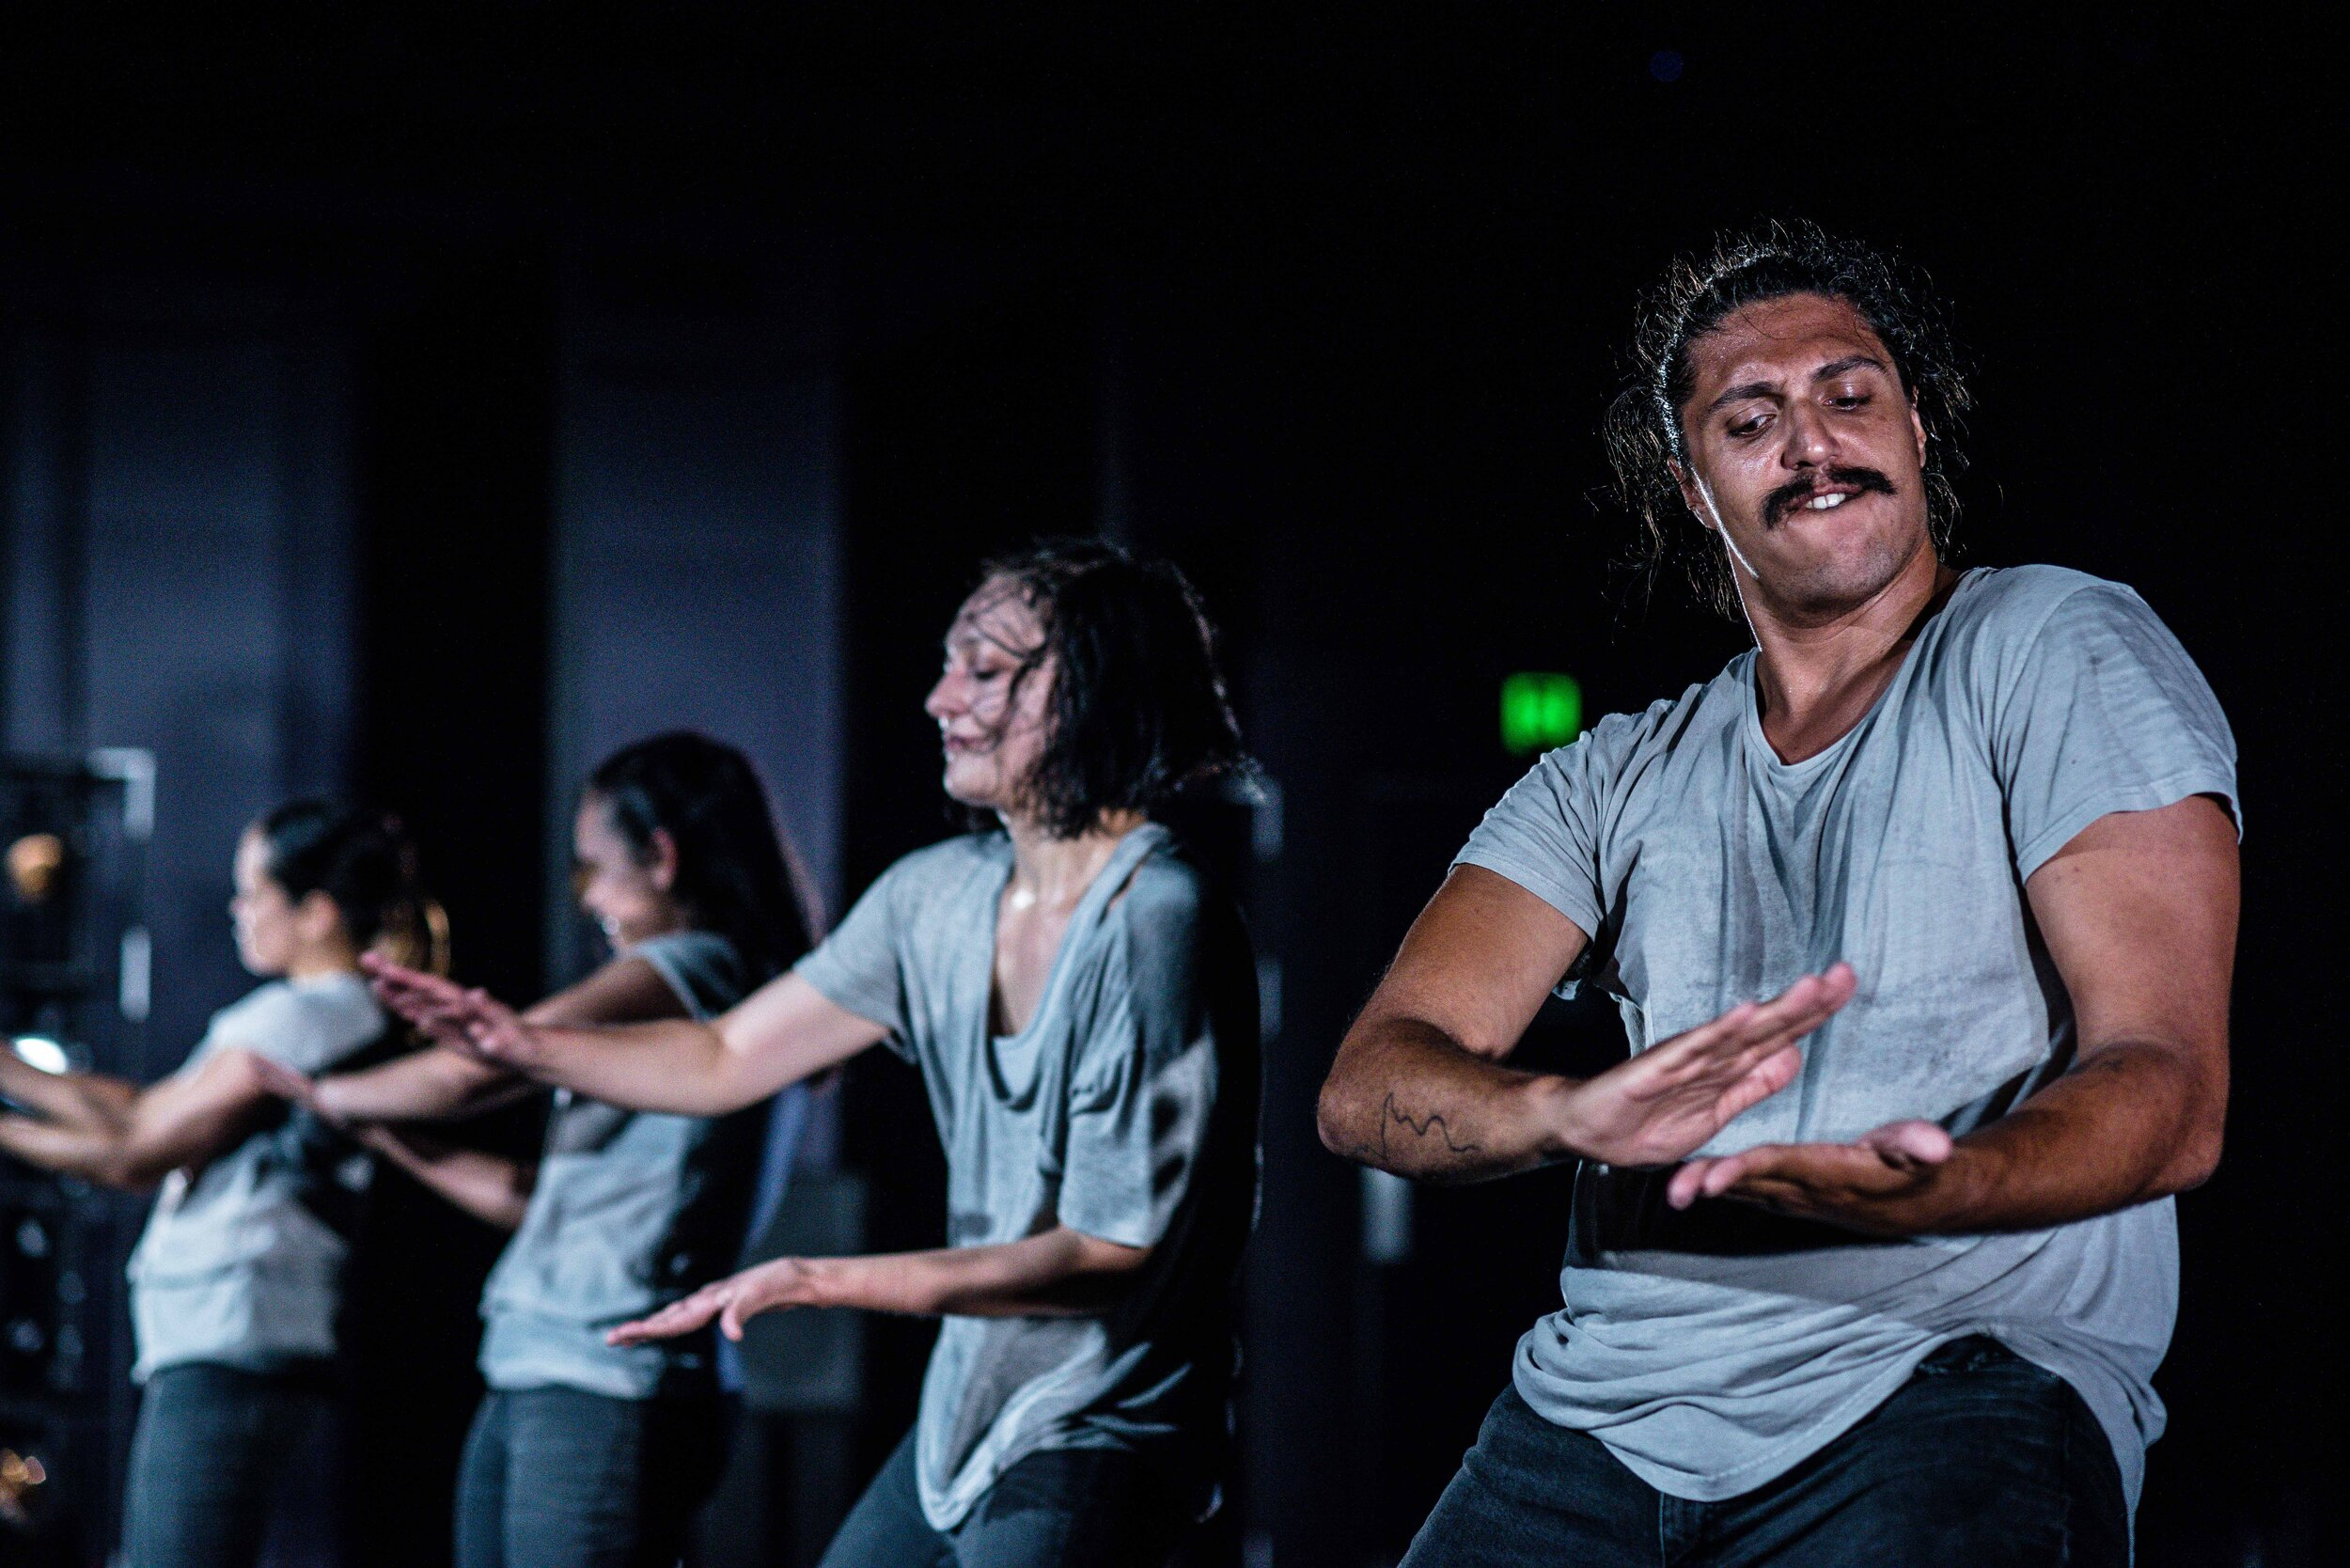 PERFORMANCE SEASONS   MELBOURNE, VIC MAY 2016 @ NEXT WAVE FESTIVAL, NORTHCOTE TOWNHALL -  WORLD PREMIERE   SYDNEY, NSW JUNE 2016 @ AFTERGLOW FESTIVAL, PACT THEATRE  TORONTO, CANADA JULY 2017 @ LIVING RITUAL FESTIVAL, FLECK DANCE THEATRE HARBOURFRONT CENTRE  BRISBANE, QLD FEBRUARY 2018 @ SUPERCELL DANCE FESTIVAL, BRISBANE POWERHOUSE THEATRE  LISMORE, NSW JUNE 2018 @ NORTHERN RIVERS PERFORMING ARTS, NORPA  NOOSA, QLD JULY 2019 @ NOOSA ALIVE!, NOOSA ARTS THEATRE  .   REVIEWS    ARTSHUB - ANTHONY REBELO    REALTIME ARTS - ALISON FINN    REALTIME ARTS - ELYSSIA BUGG    DANCE AUSTRALIA - DENISE RICHARDSON    SCENESTR. - STAFF WRITERS    XS ENTERTAINMENT - RUTH RIDGWAY